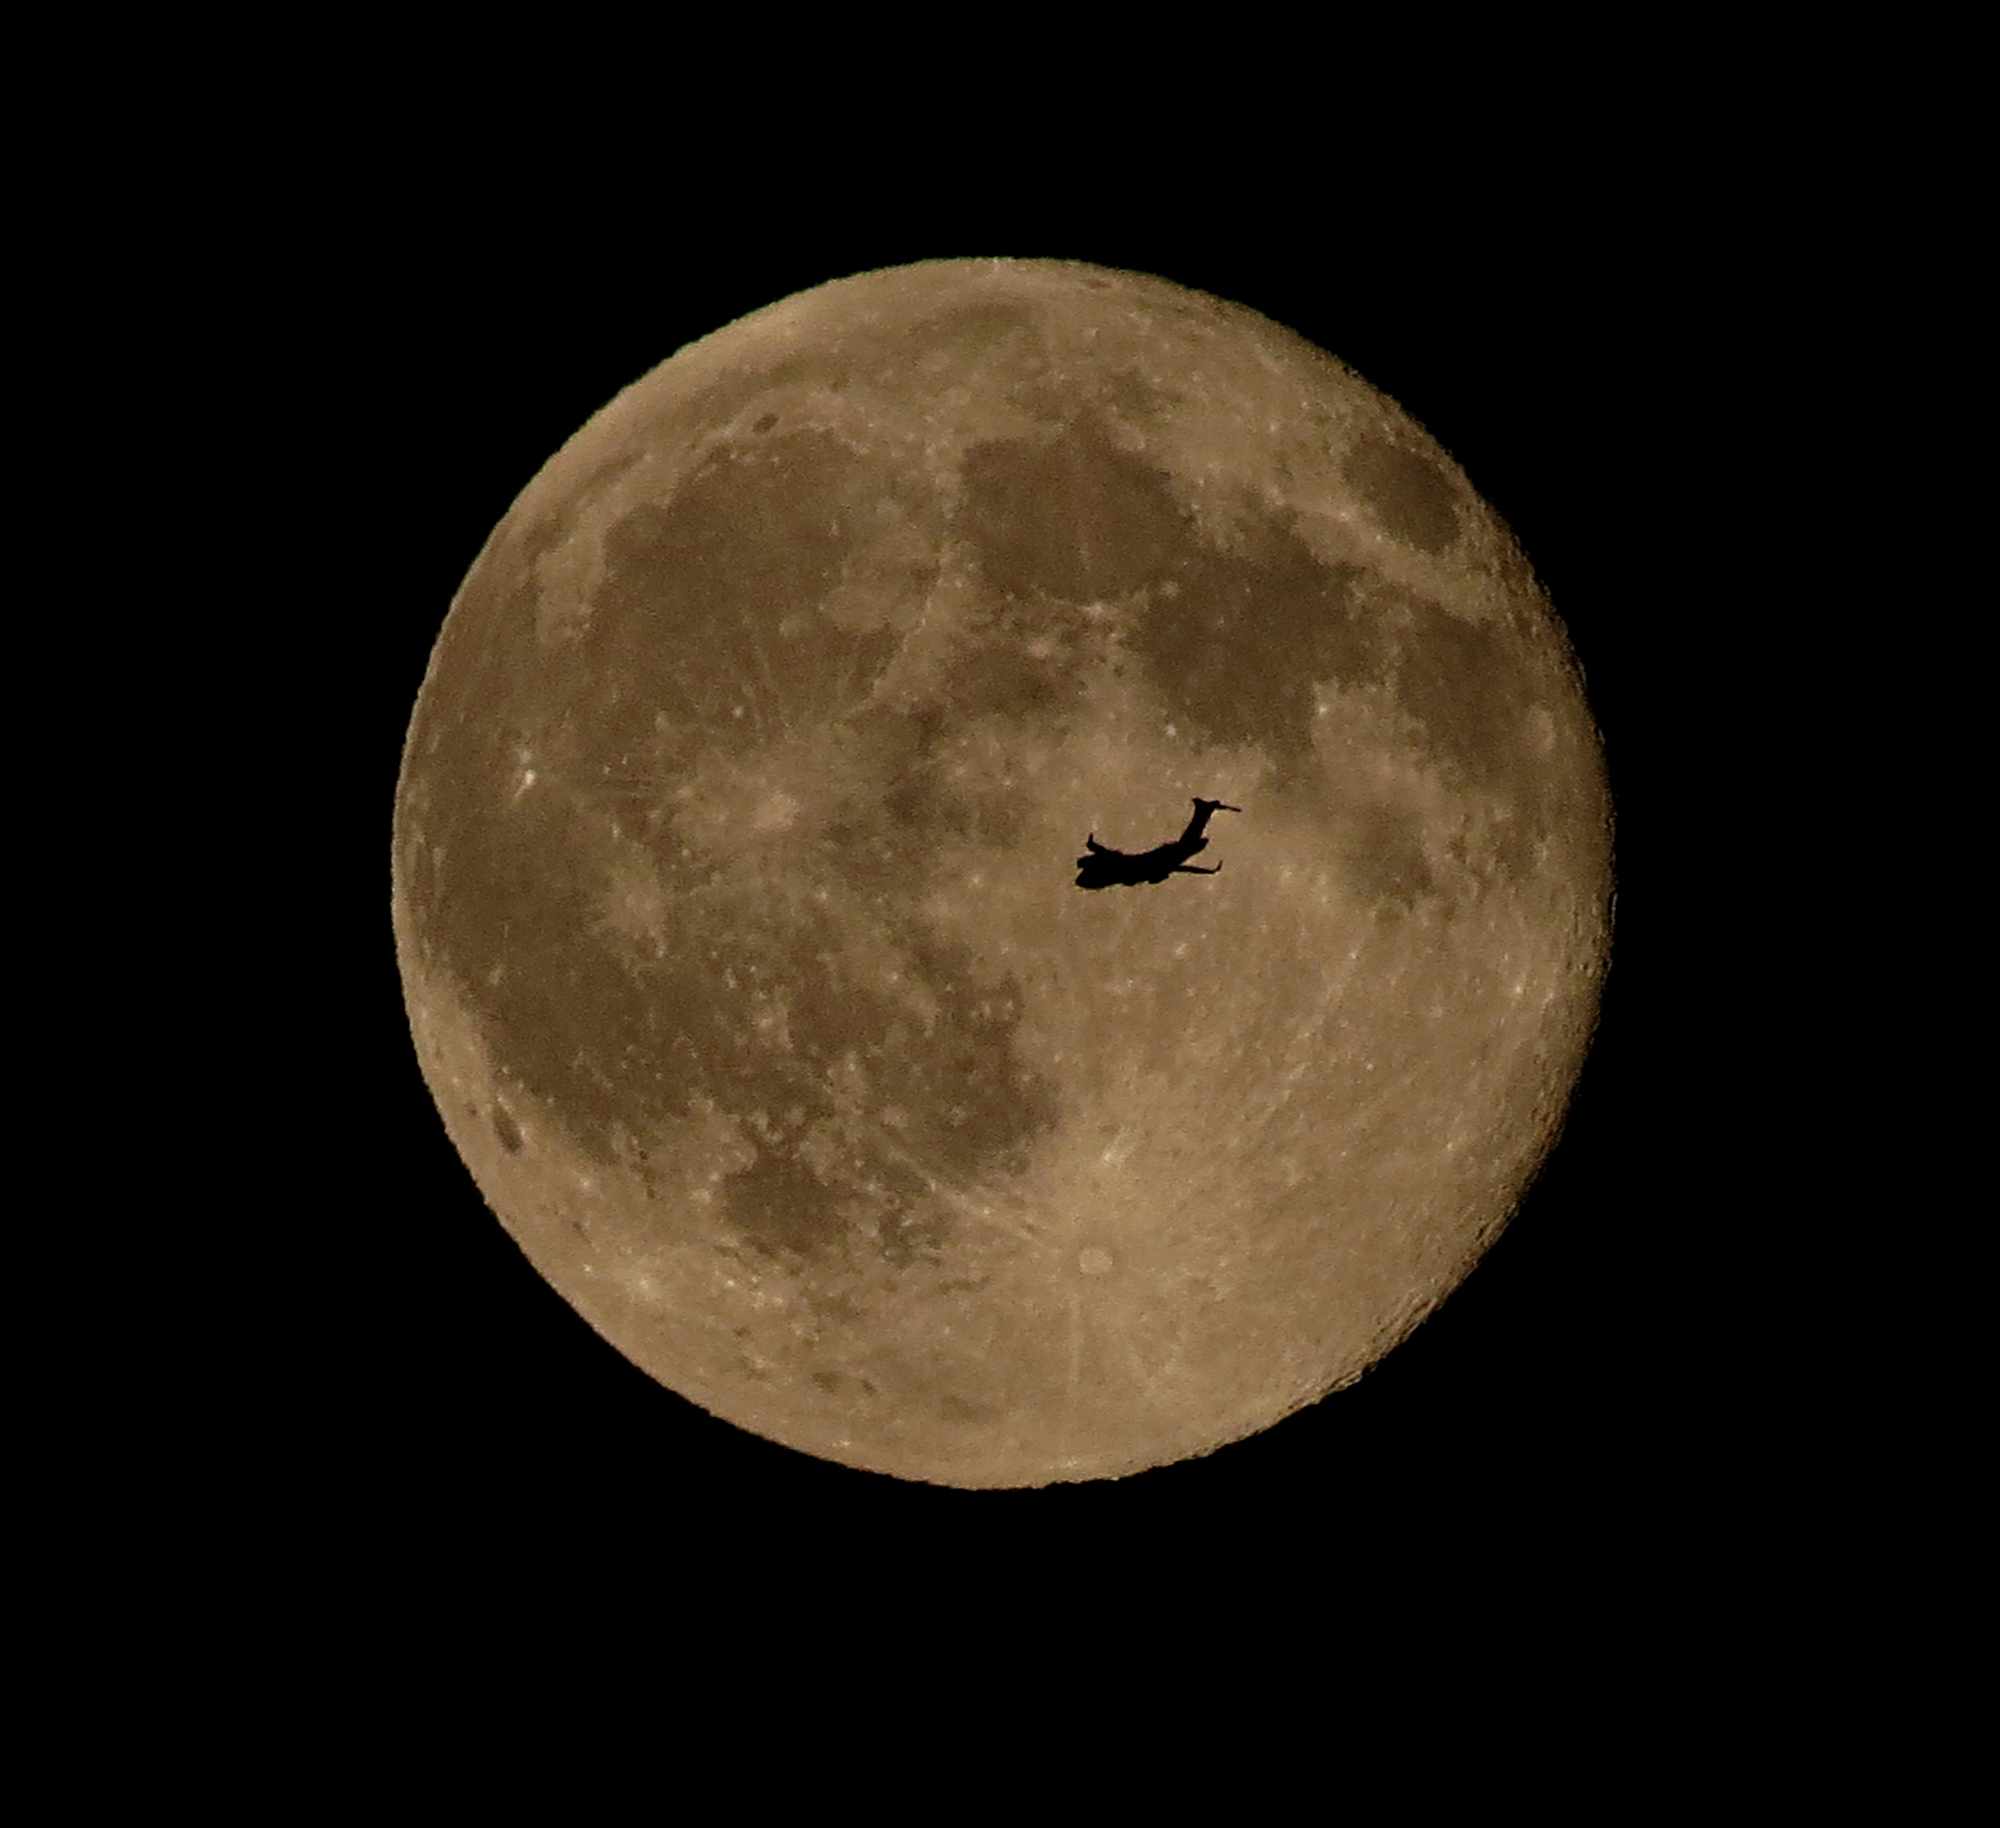 An airplane flies in front of the brilliant Blue Moon full moon of July 31, 2015 in this stunning photo captured by skywatcher Chris Jankowski of Erie, Pennsylvania on July 31, 2015.